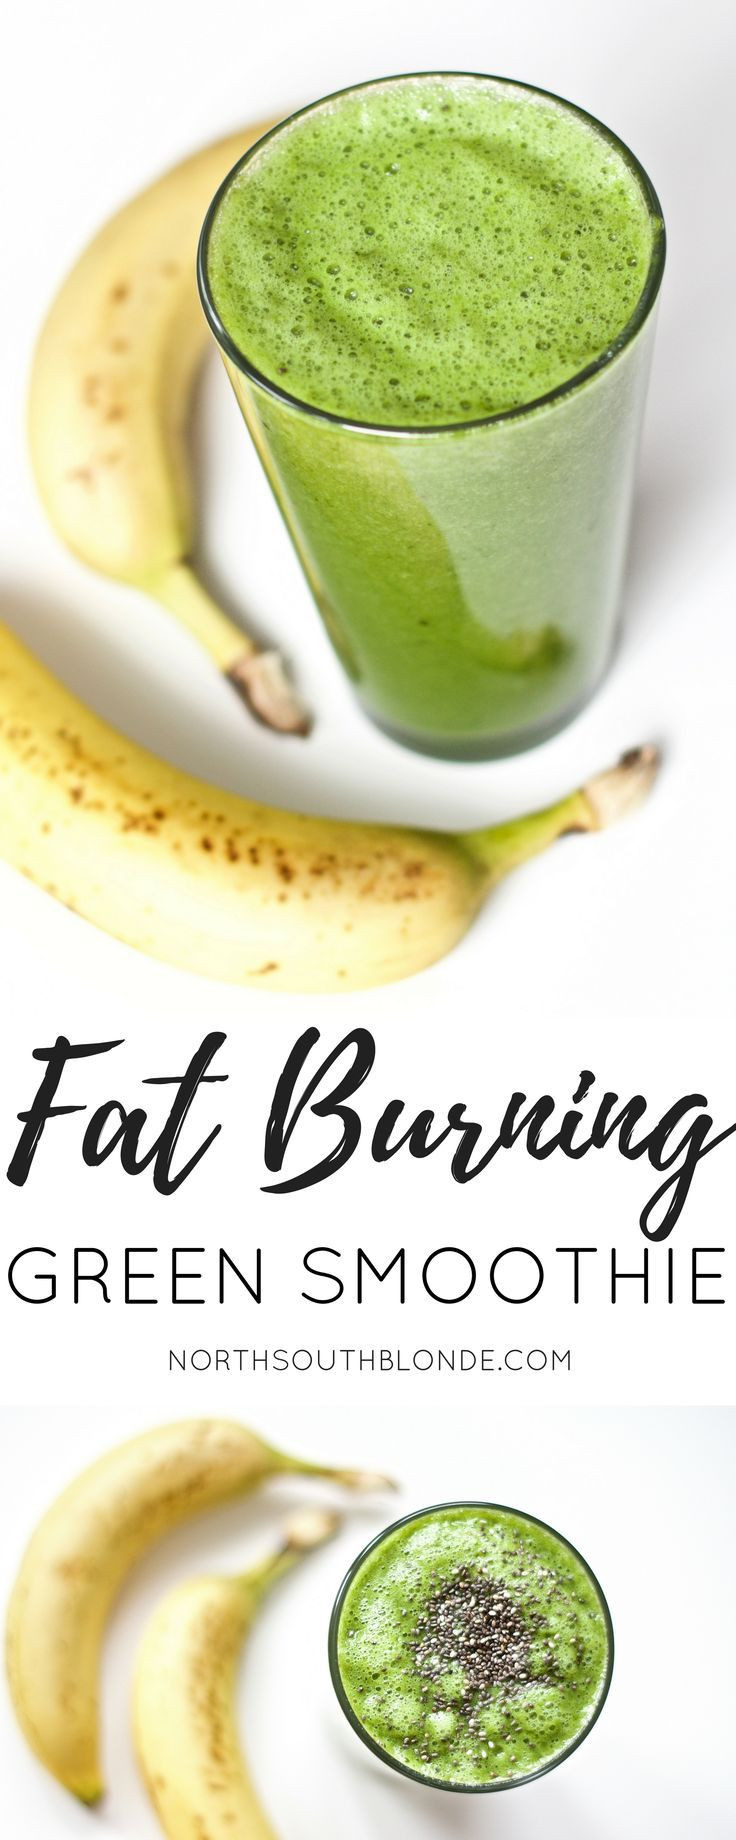 Healthy Vegan Recipes For Weight Loss  Fat Burning Green Smoothie Post Workout Gluten Free